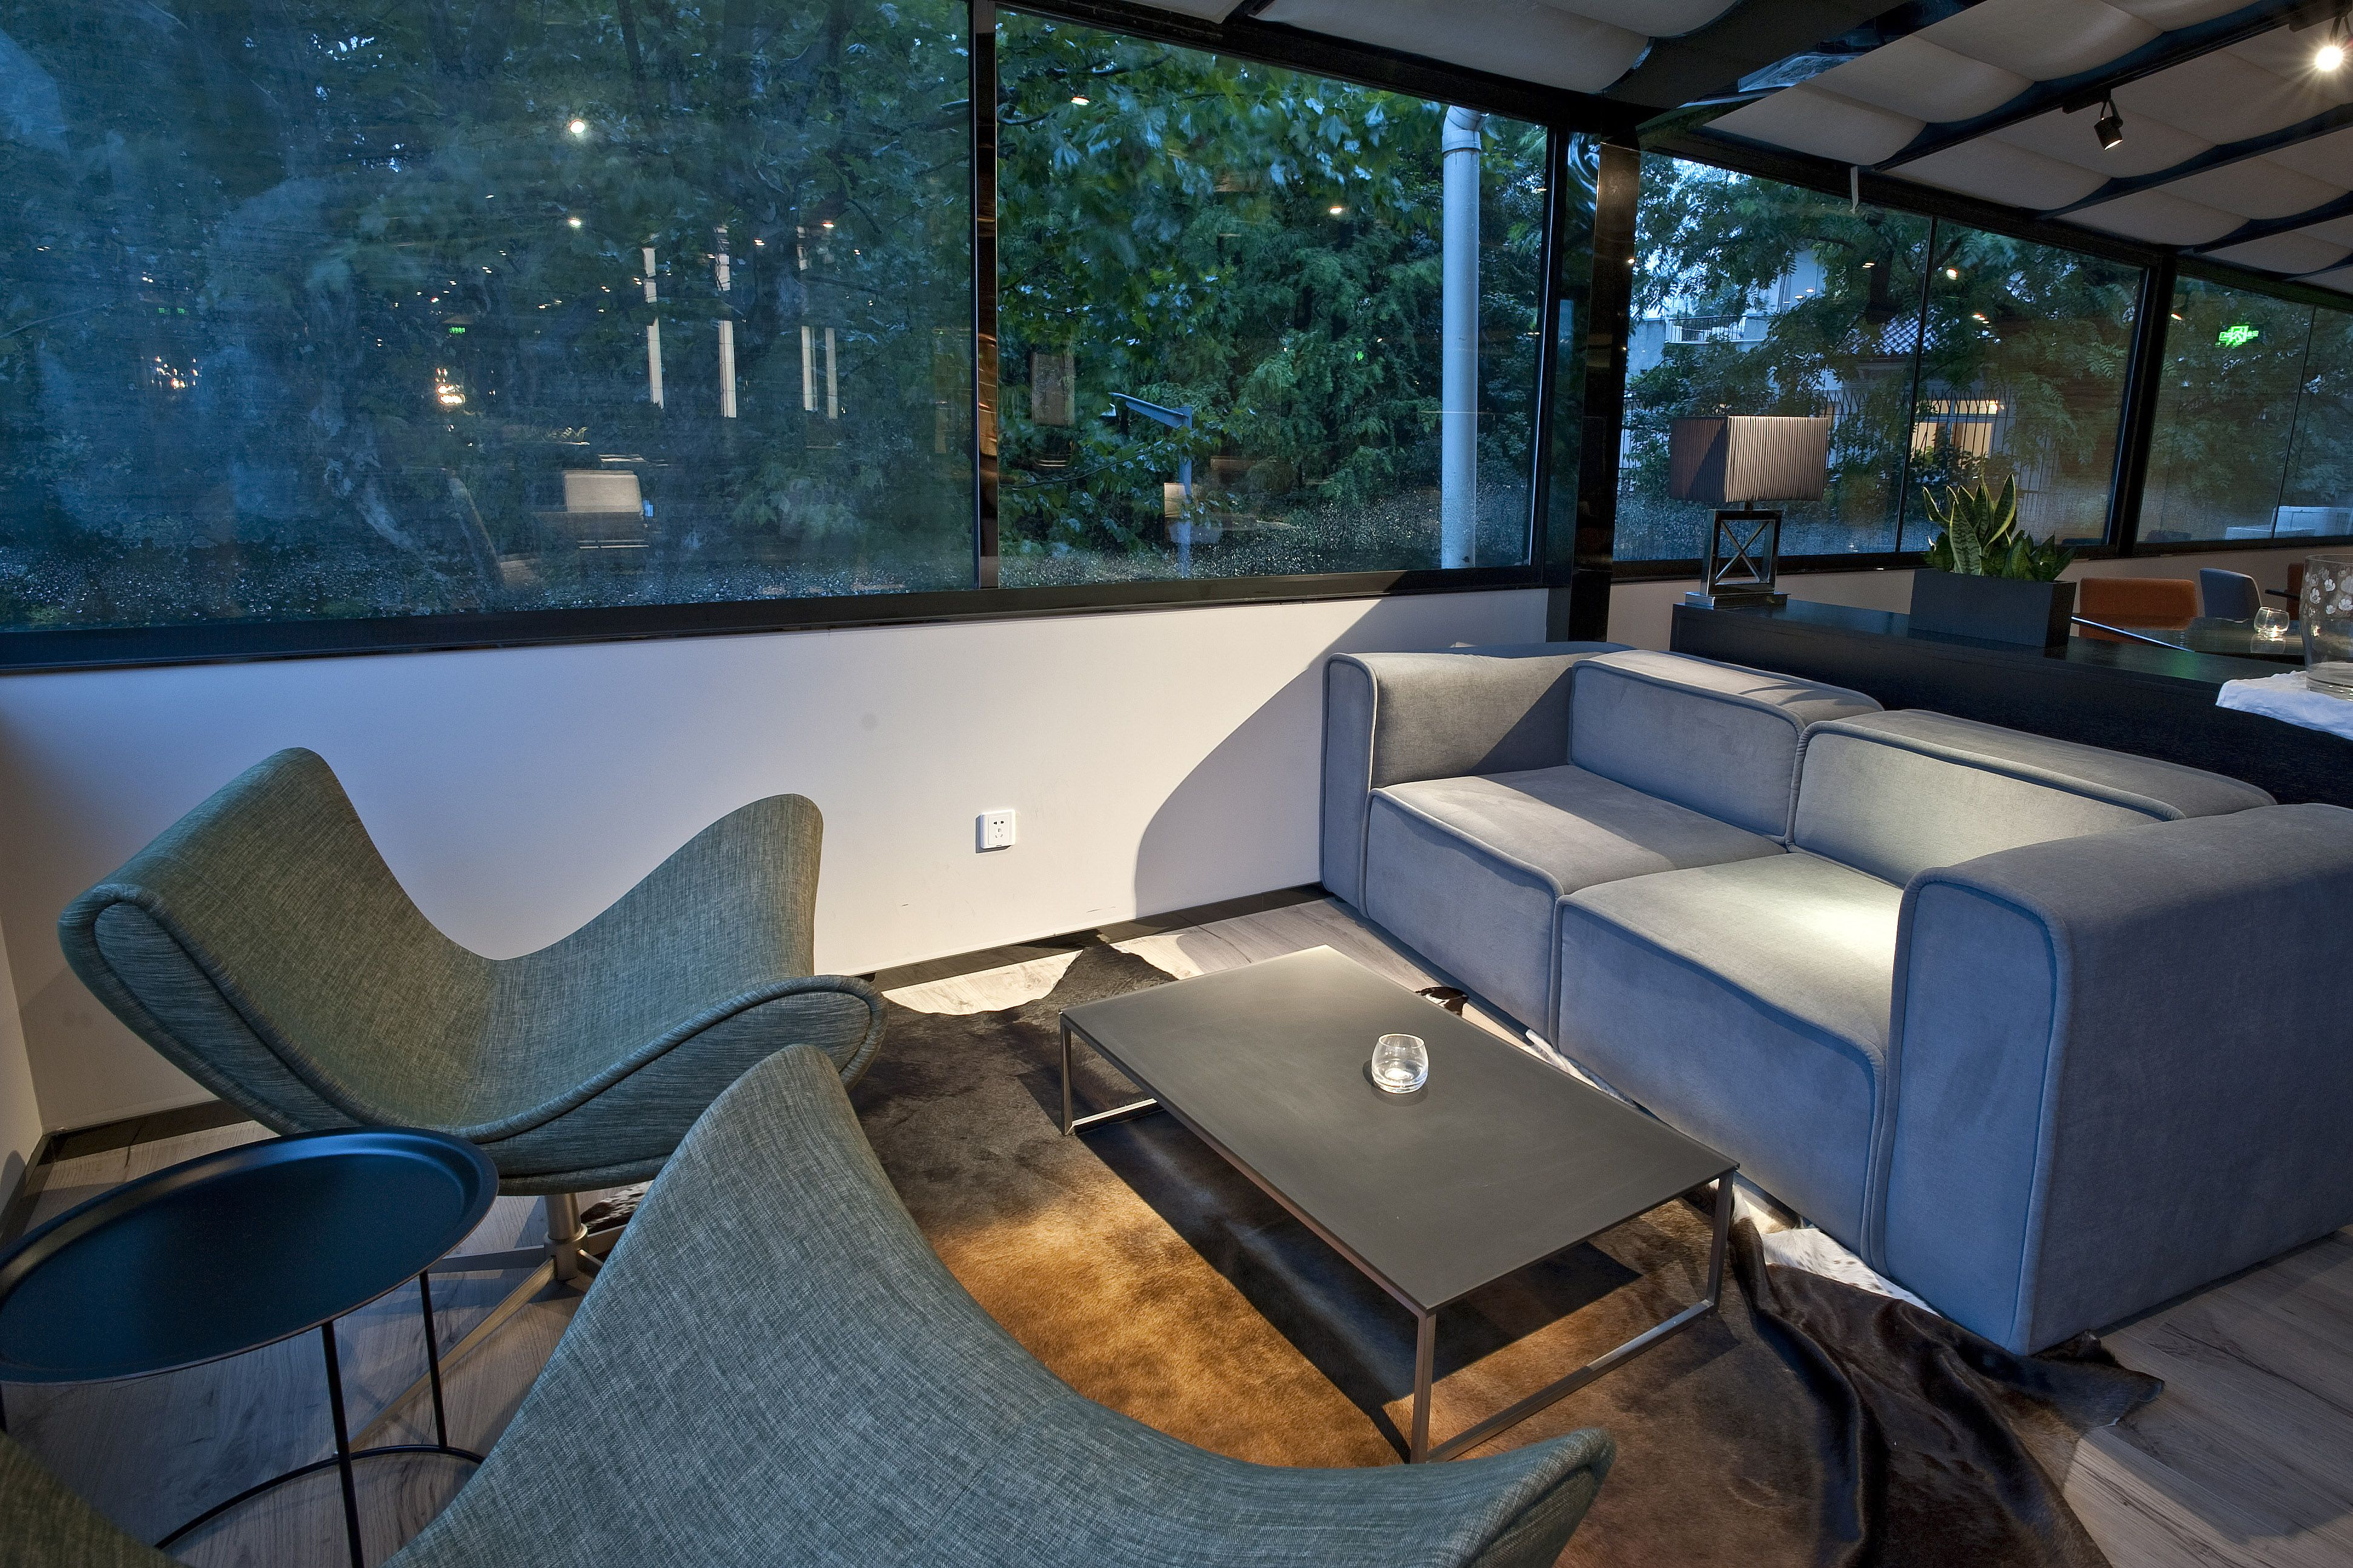 BoConcept Carmo sofa and Imola chairs in Muse VIP Lounge Shanghai